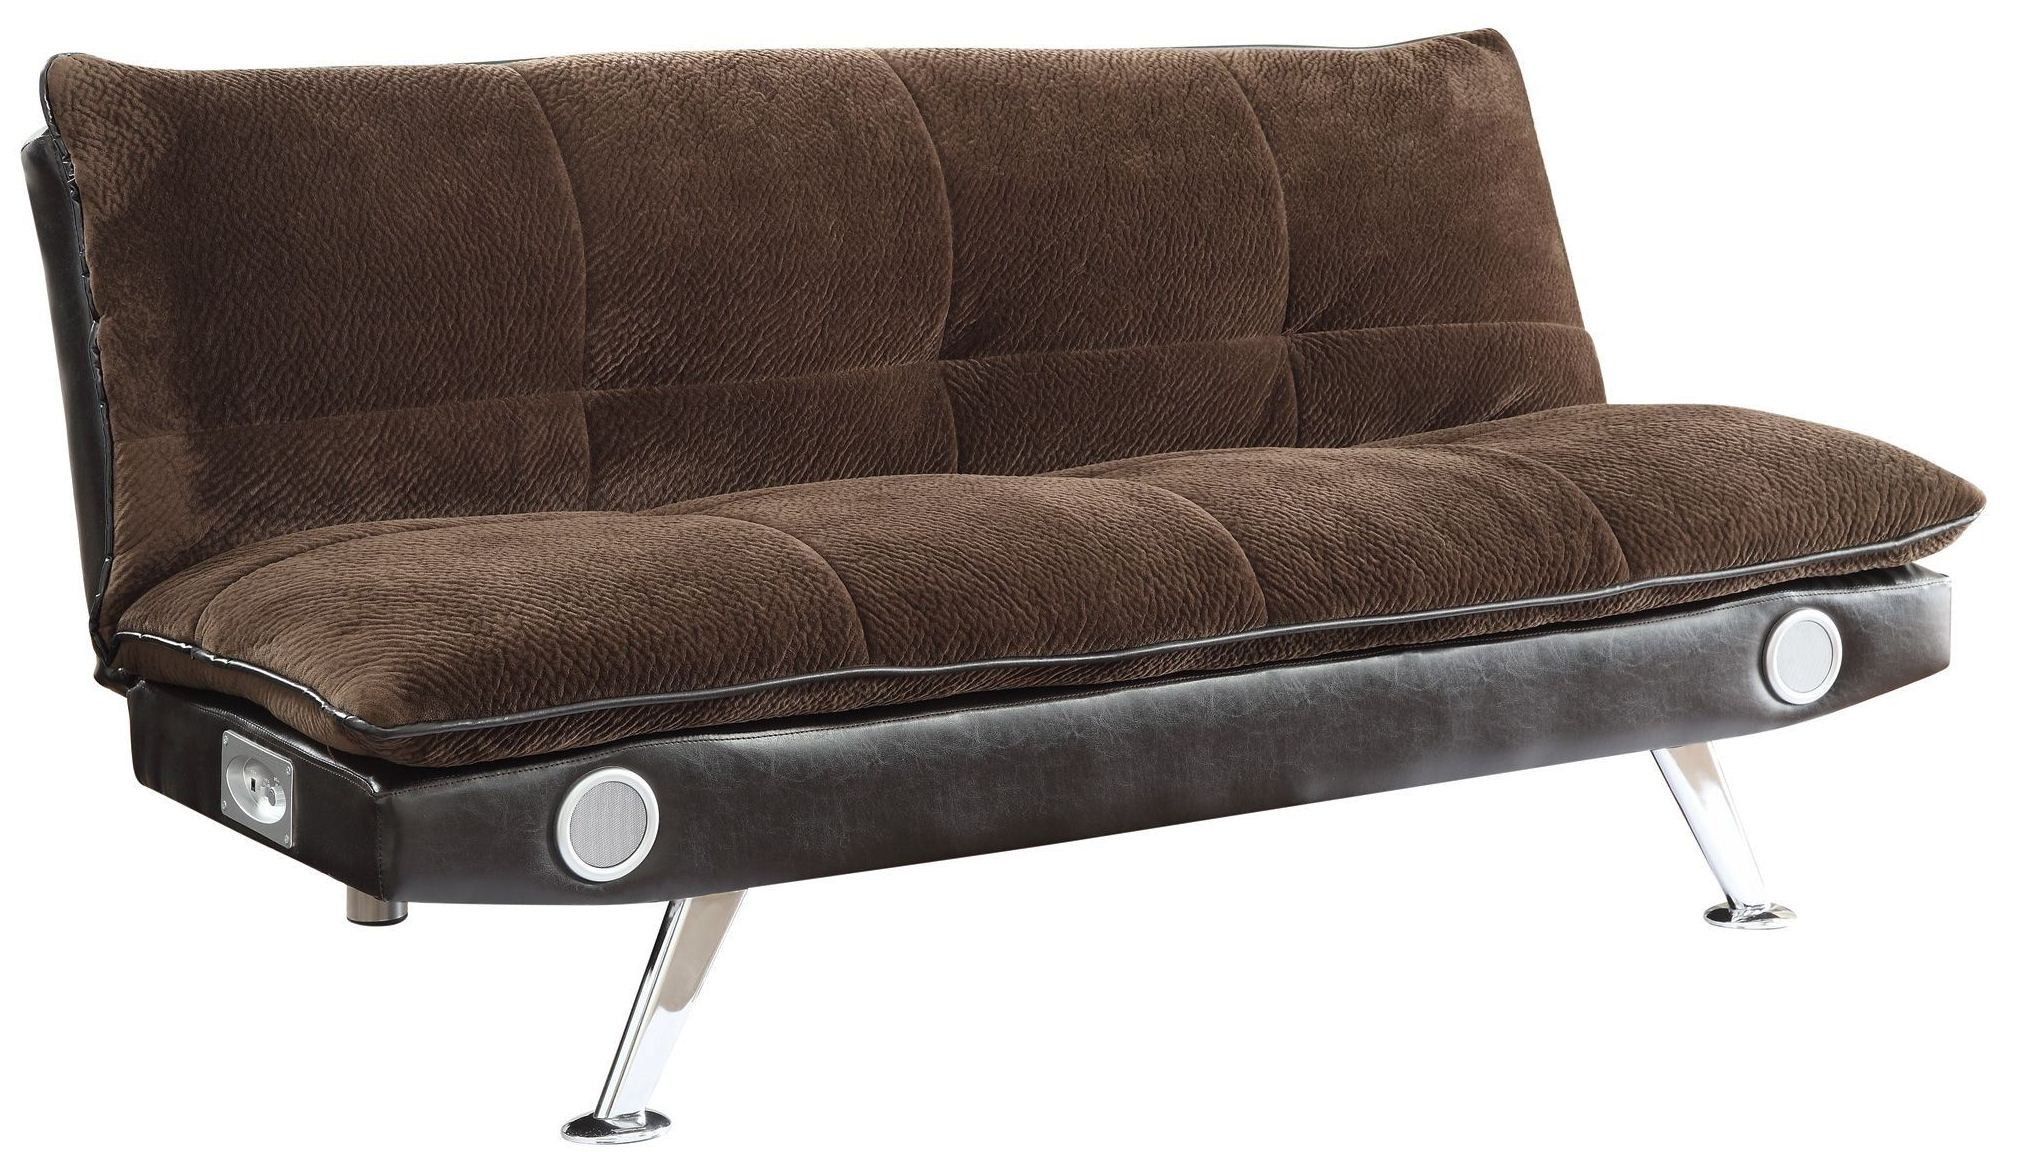 Braxton Velvet Brown Sofa Bed From Coaster 500047 Coleman Furniture